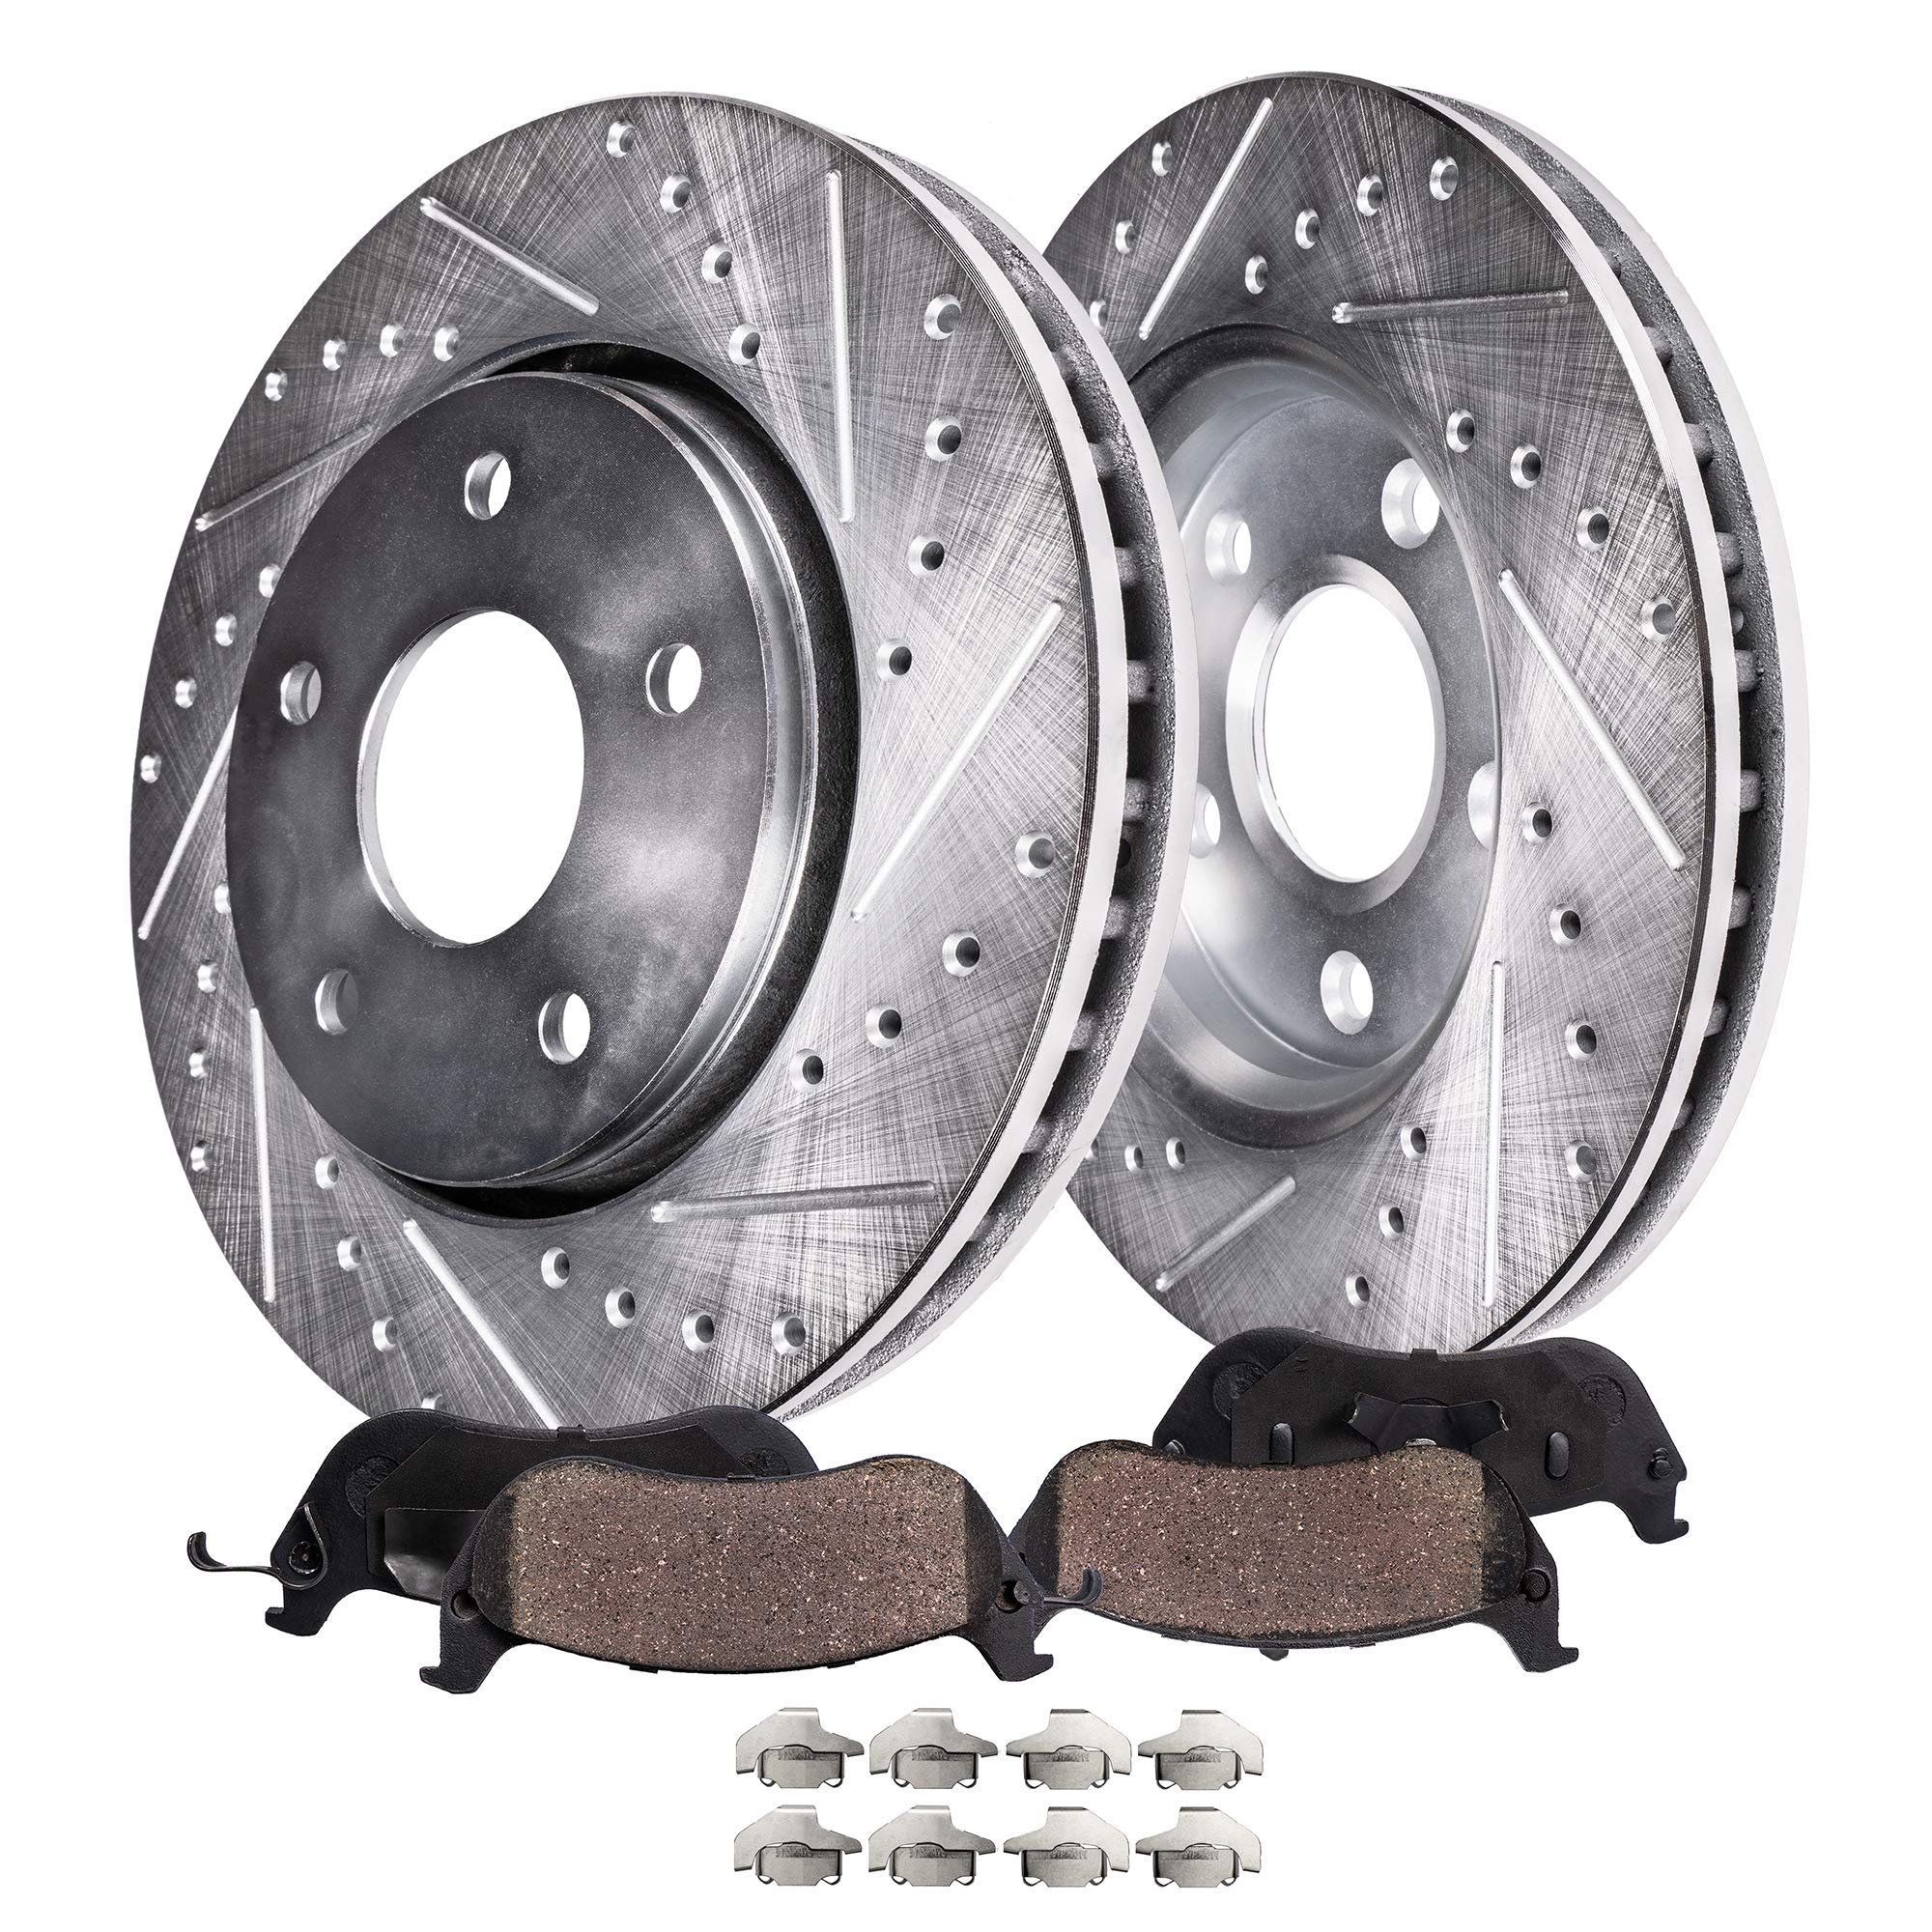 320mm Front 308mm Rear Drilled Rotor Ceramic Brake Pad for 2006-2009 Nissan 350Z